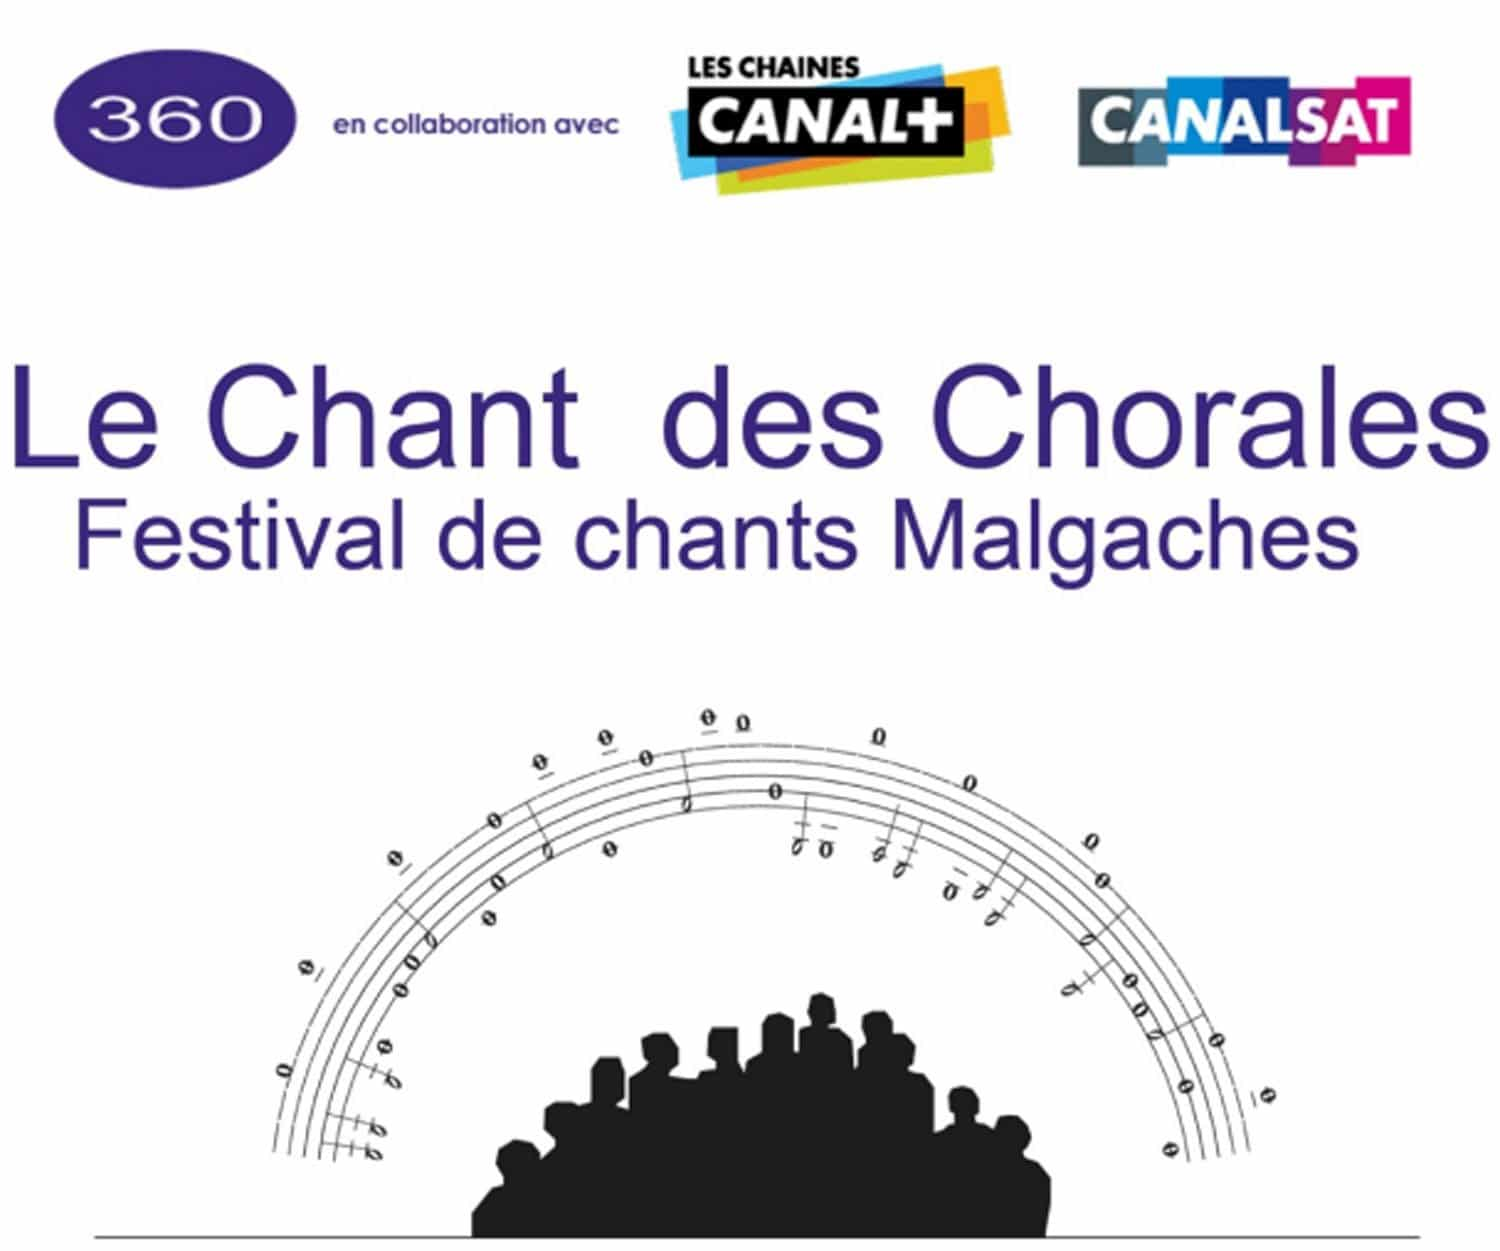 ARTICLE-Le chant des chorales